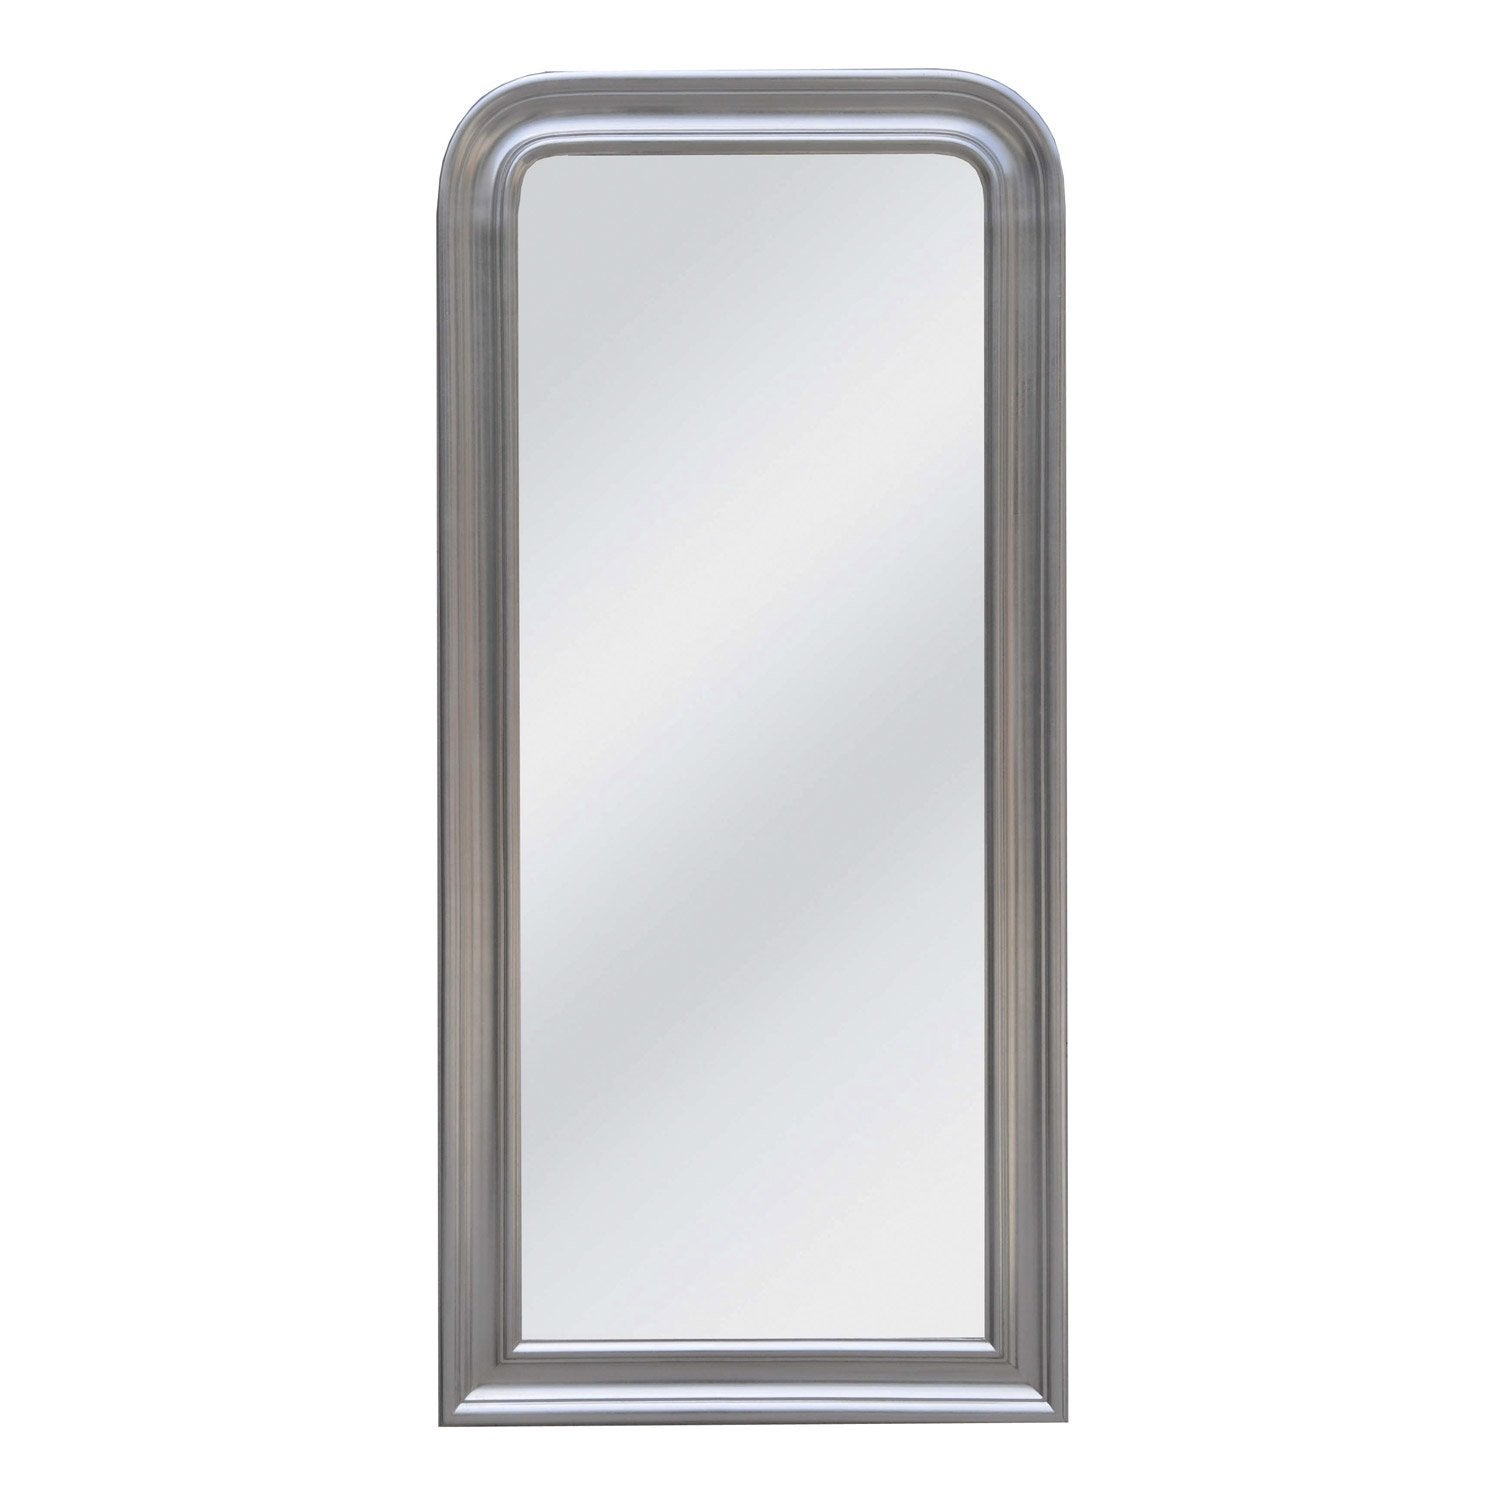 Miroir daventry rectangle argent 70x150 cm leroy merlin - Leroy merlin miroir grossissant ...